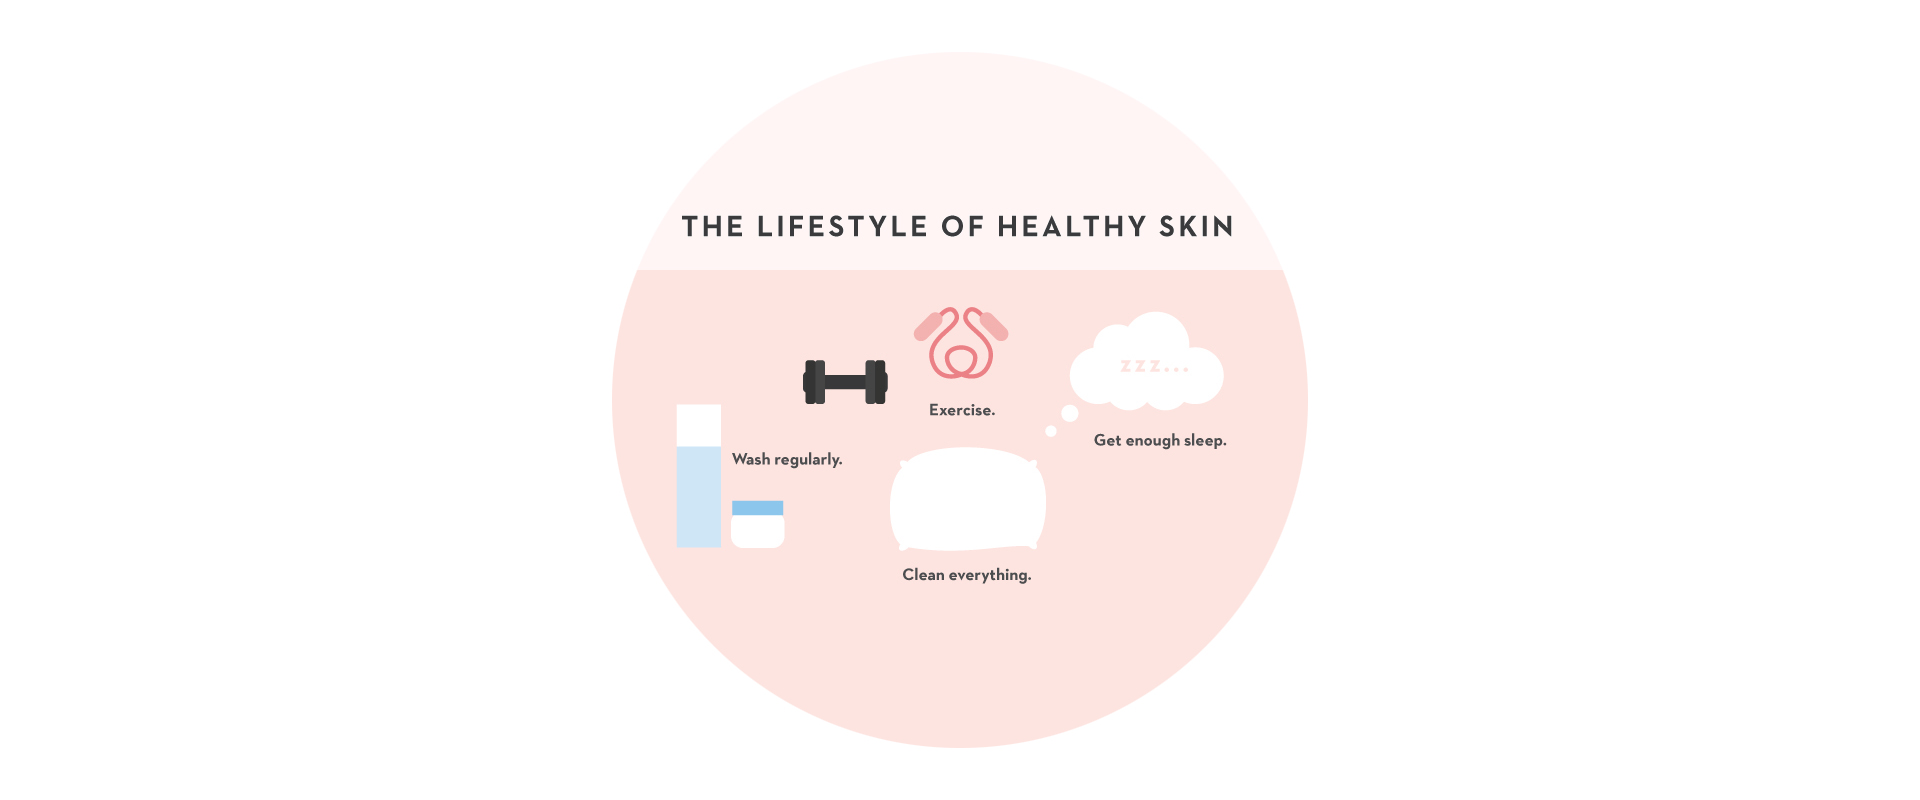 here are some lifestyle changes that may have a positive effect on reducing  the number and severity of your blackhead breakouts